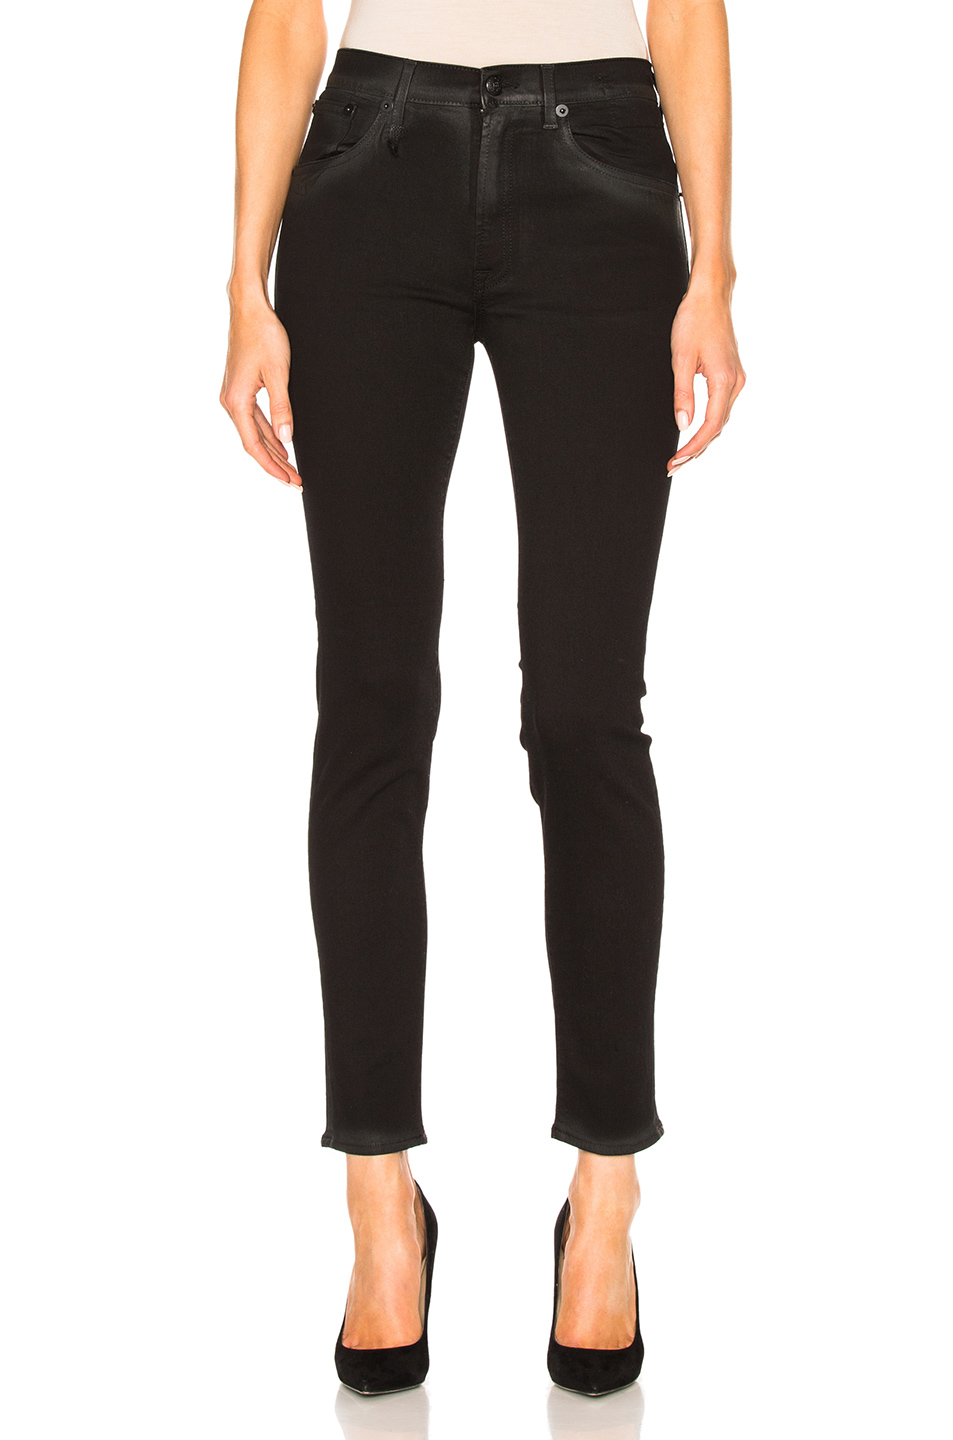 R13 Jenny Mid Rise Skinny Jeans in Black Marble